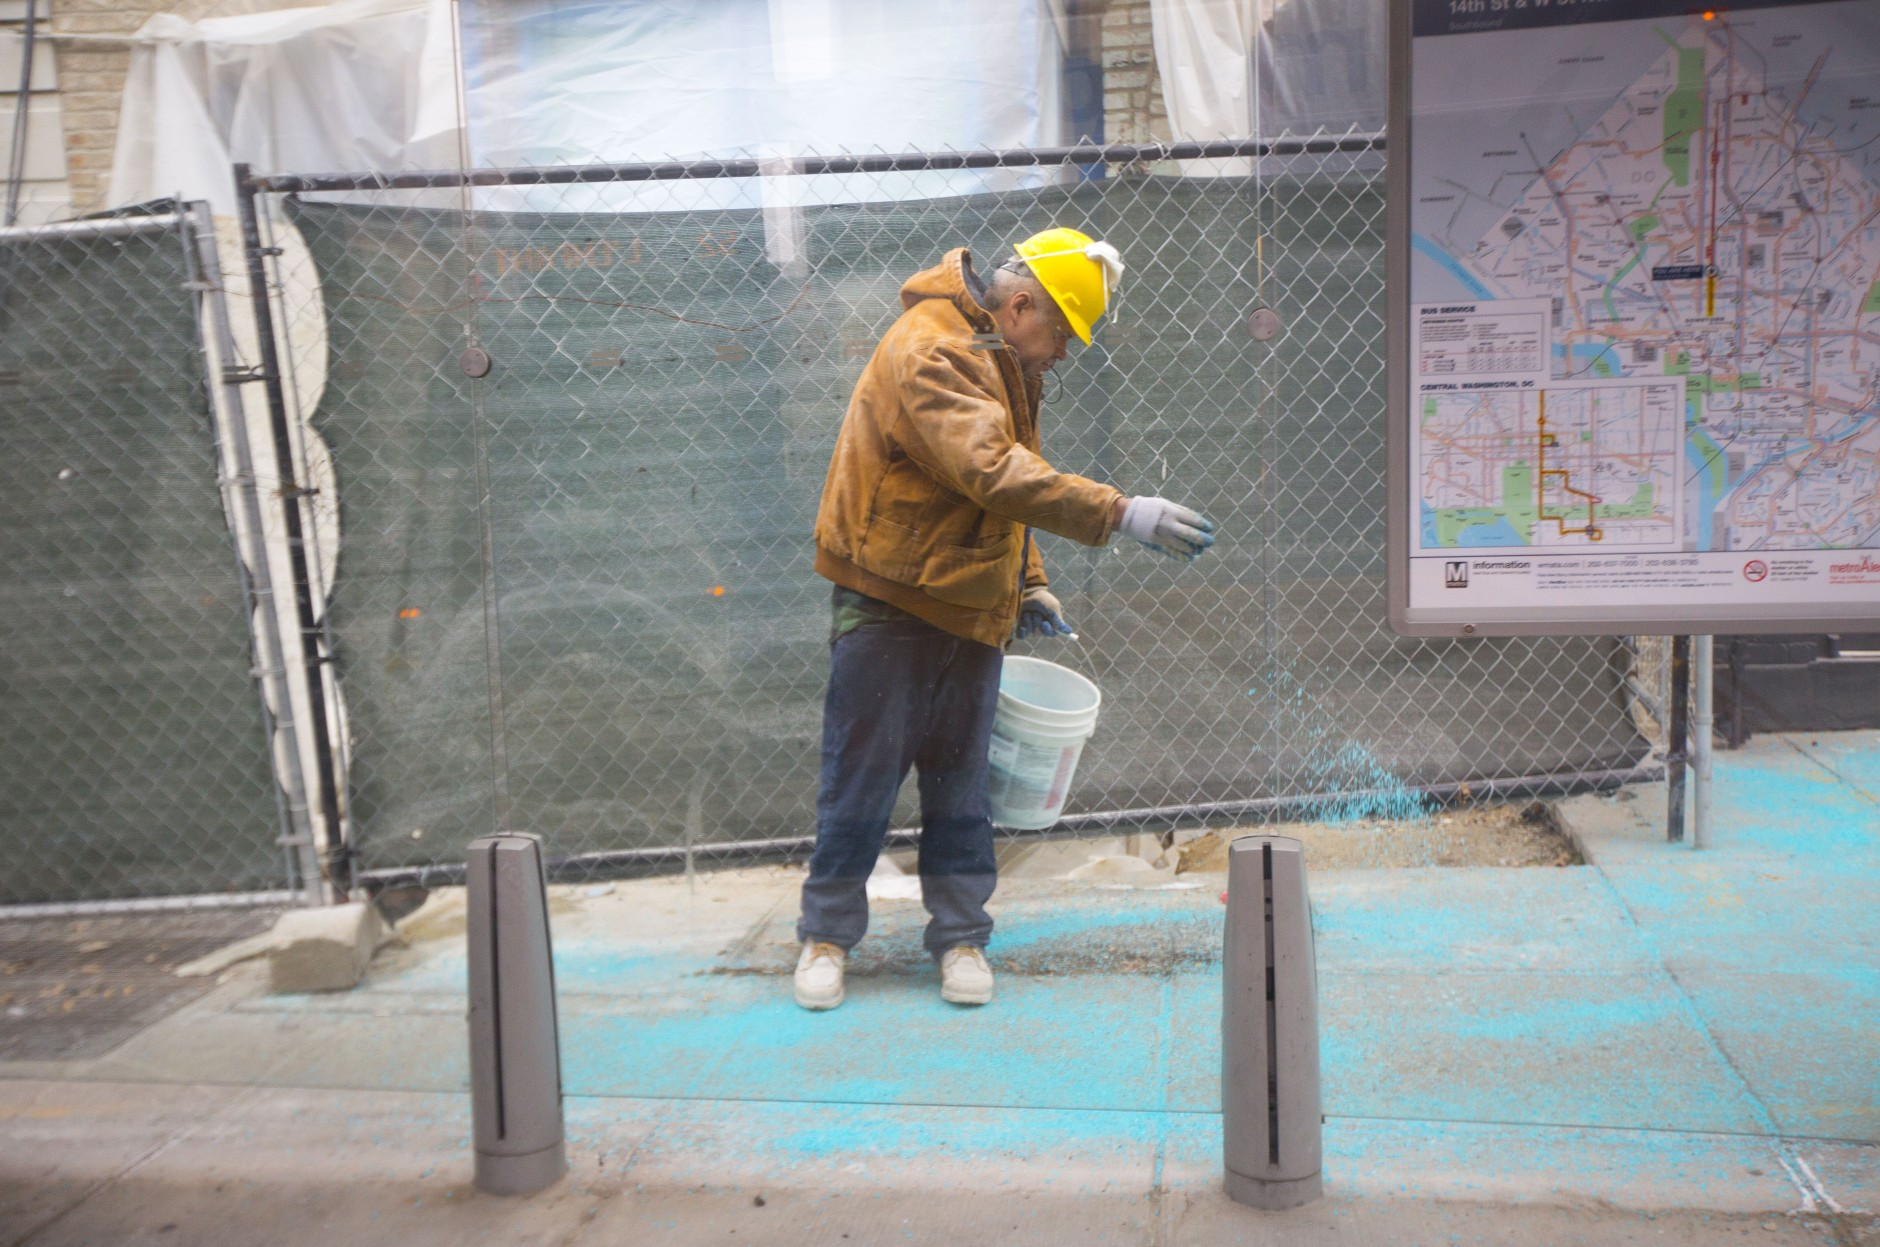 A construction worker treats the sidewalk near a bus stop on 14th Street NW in the Columbia Heights neighborhood of Washington, Friday, Jan. 22, 2016, as the nation's capital hunkers down in preparation for a major snowstorm. Food and supplies vanished from store shelves, five states and the District of Columbia declared states of emergency ahead of the slow-moving system. (AP Photo/Pablo Martinez Monsivais)